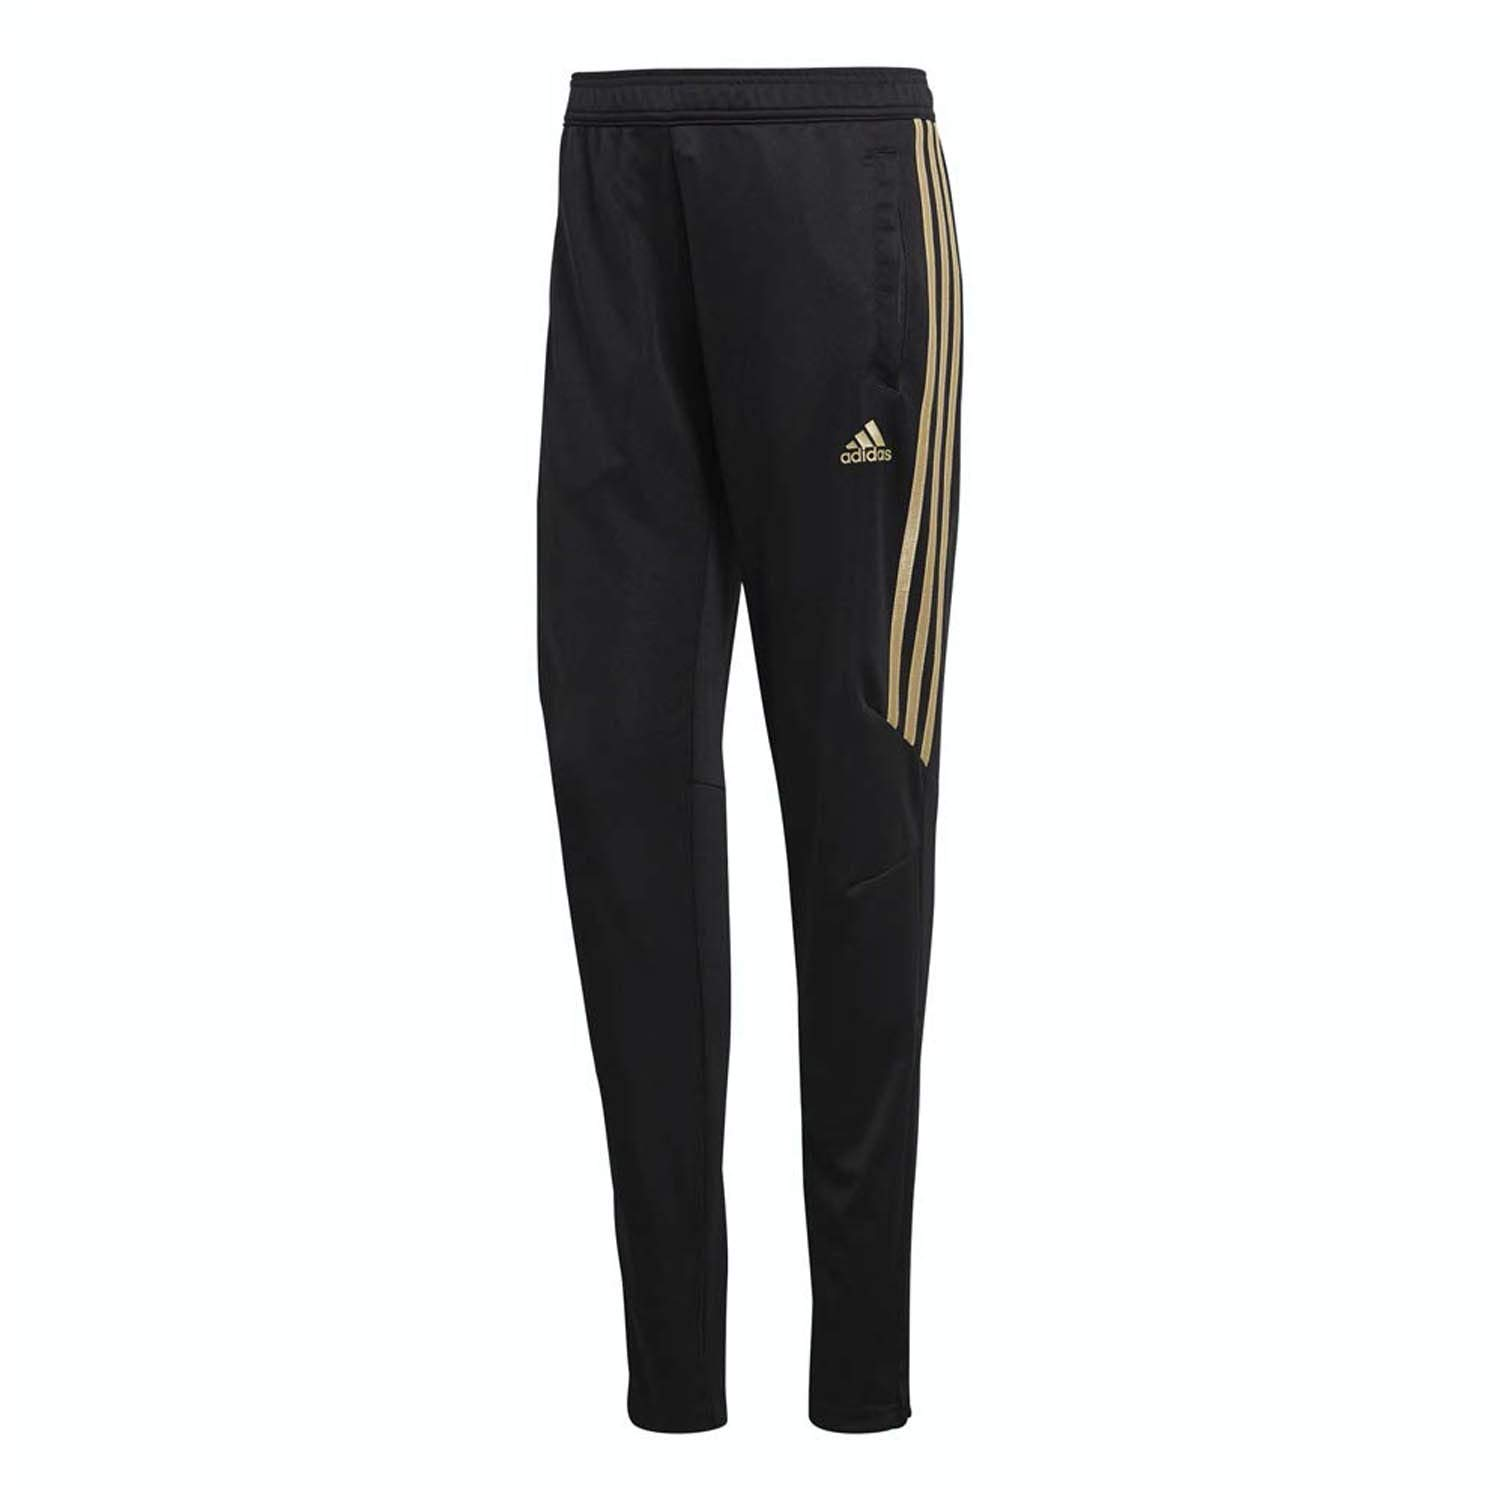 adidas Women's Tiro '17 Pants Black/Gold Metallic Large 32 by adidas